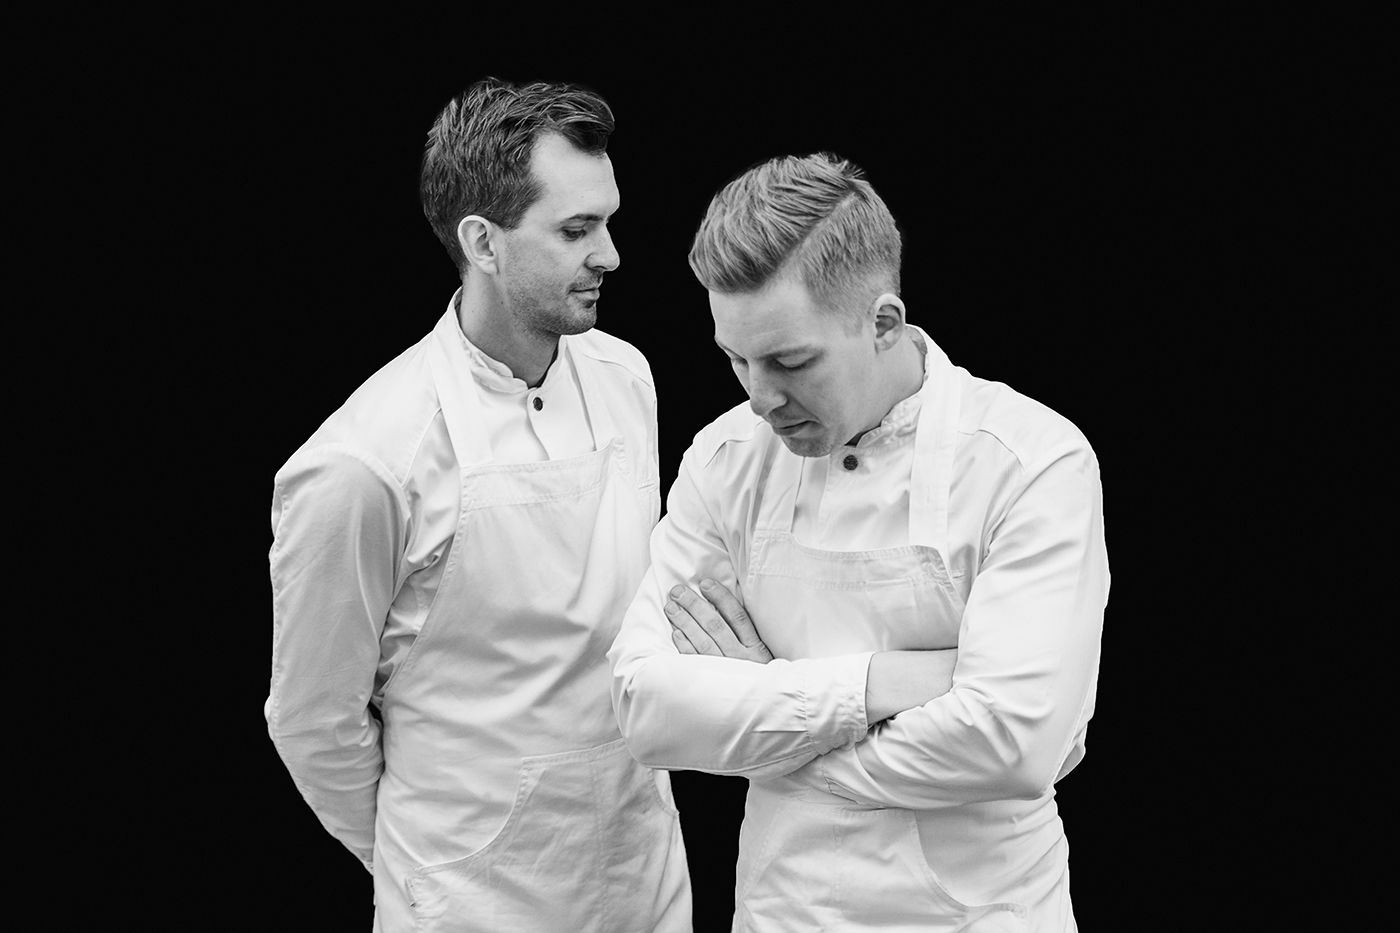 AGENT MOLLY & CO / Photographer Fredrik Skogkvist